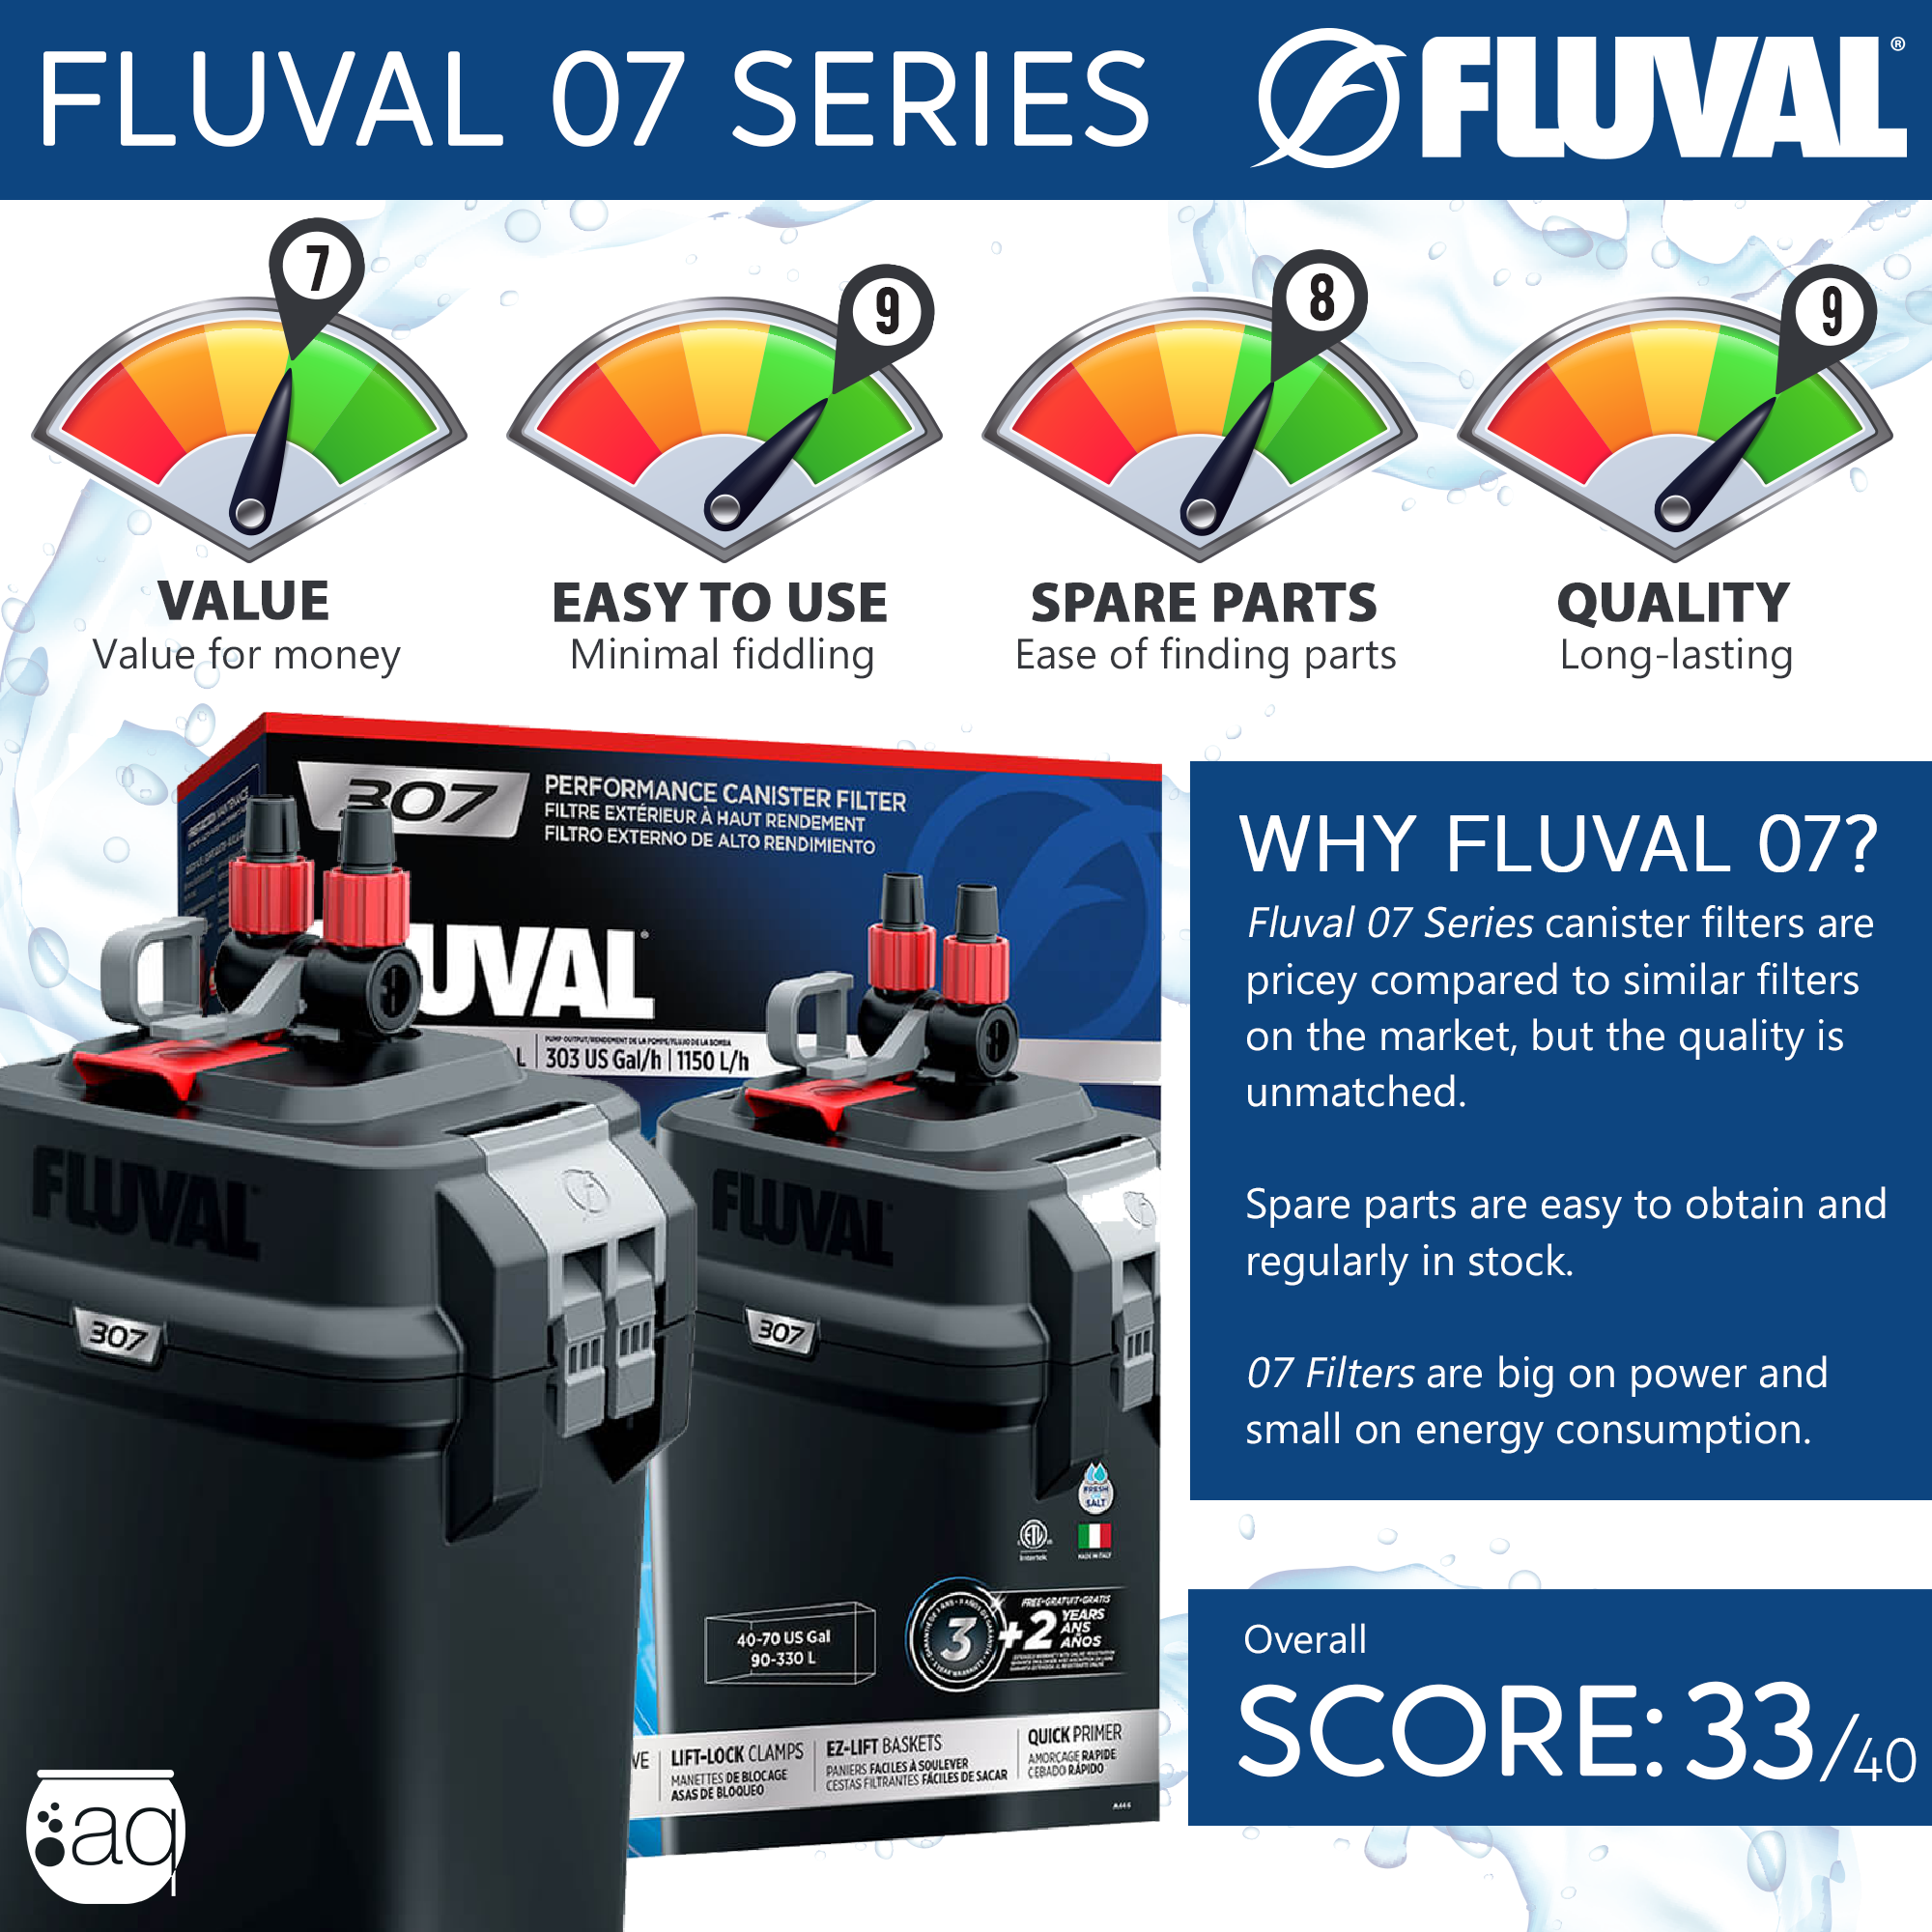 fluval-scale.png